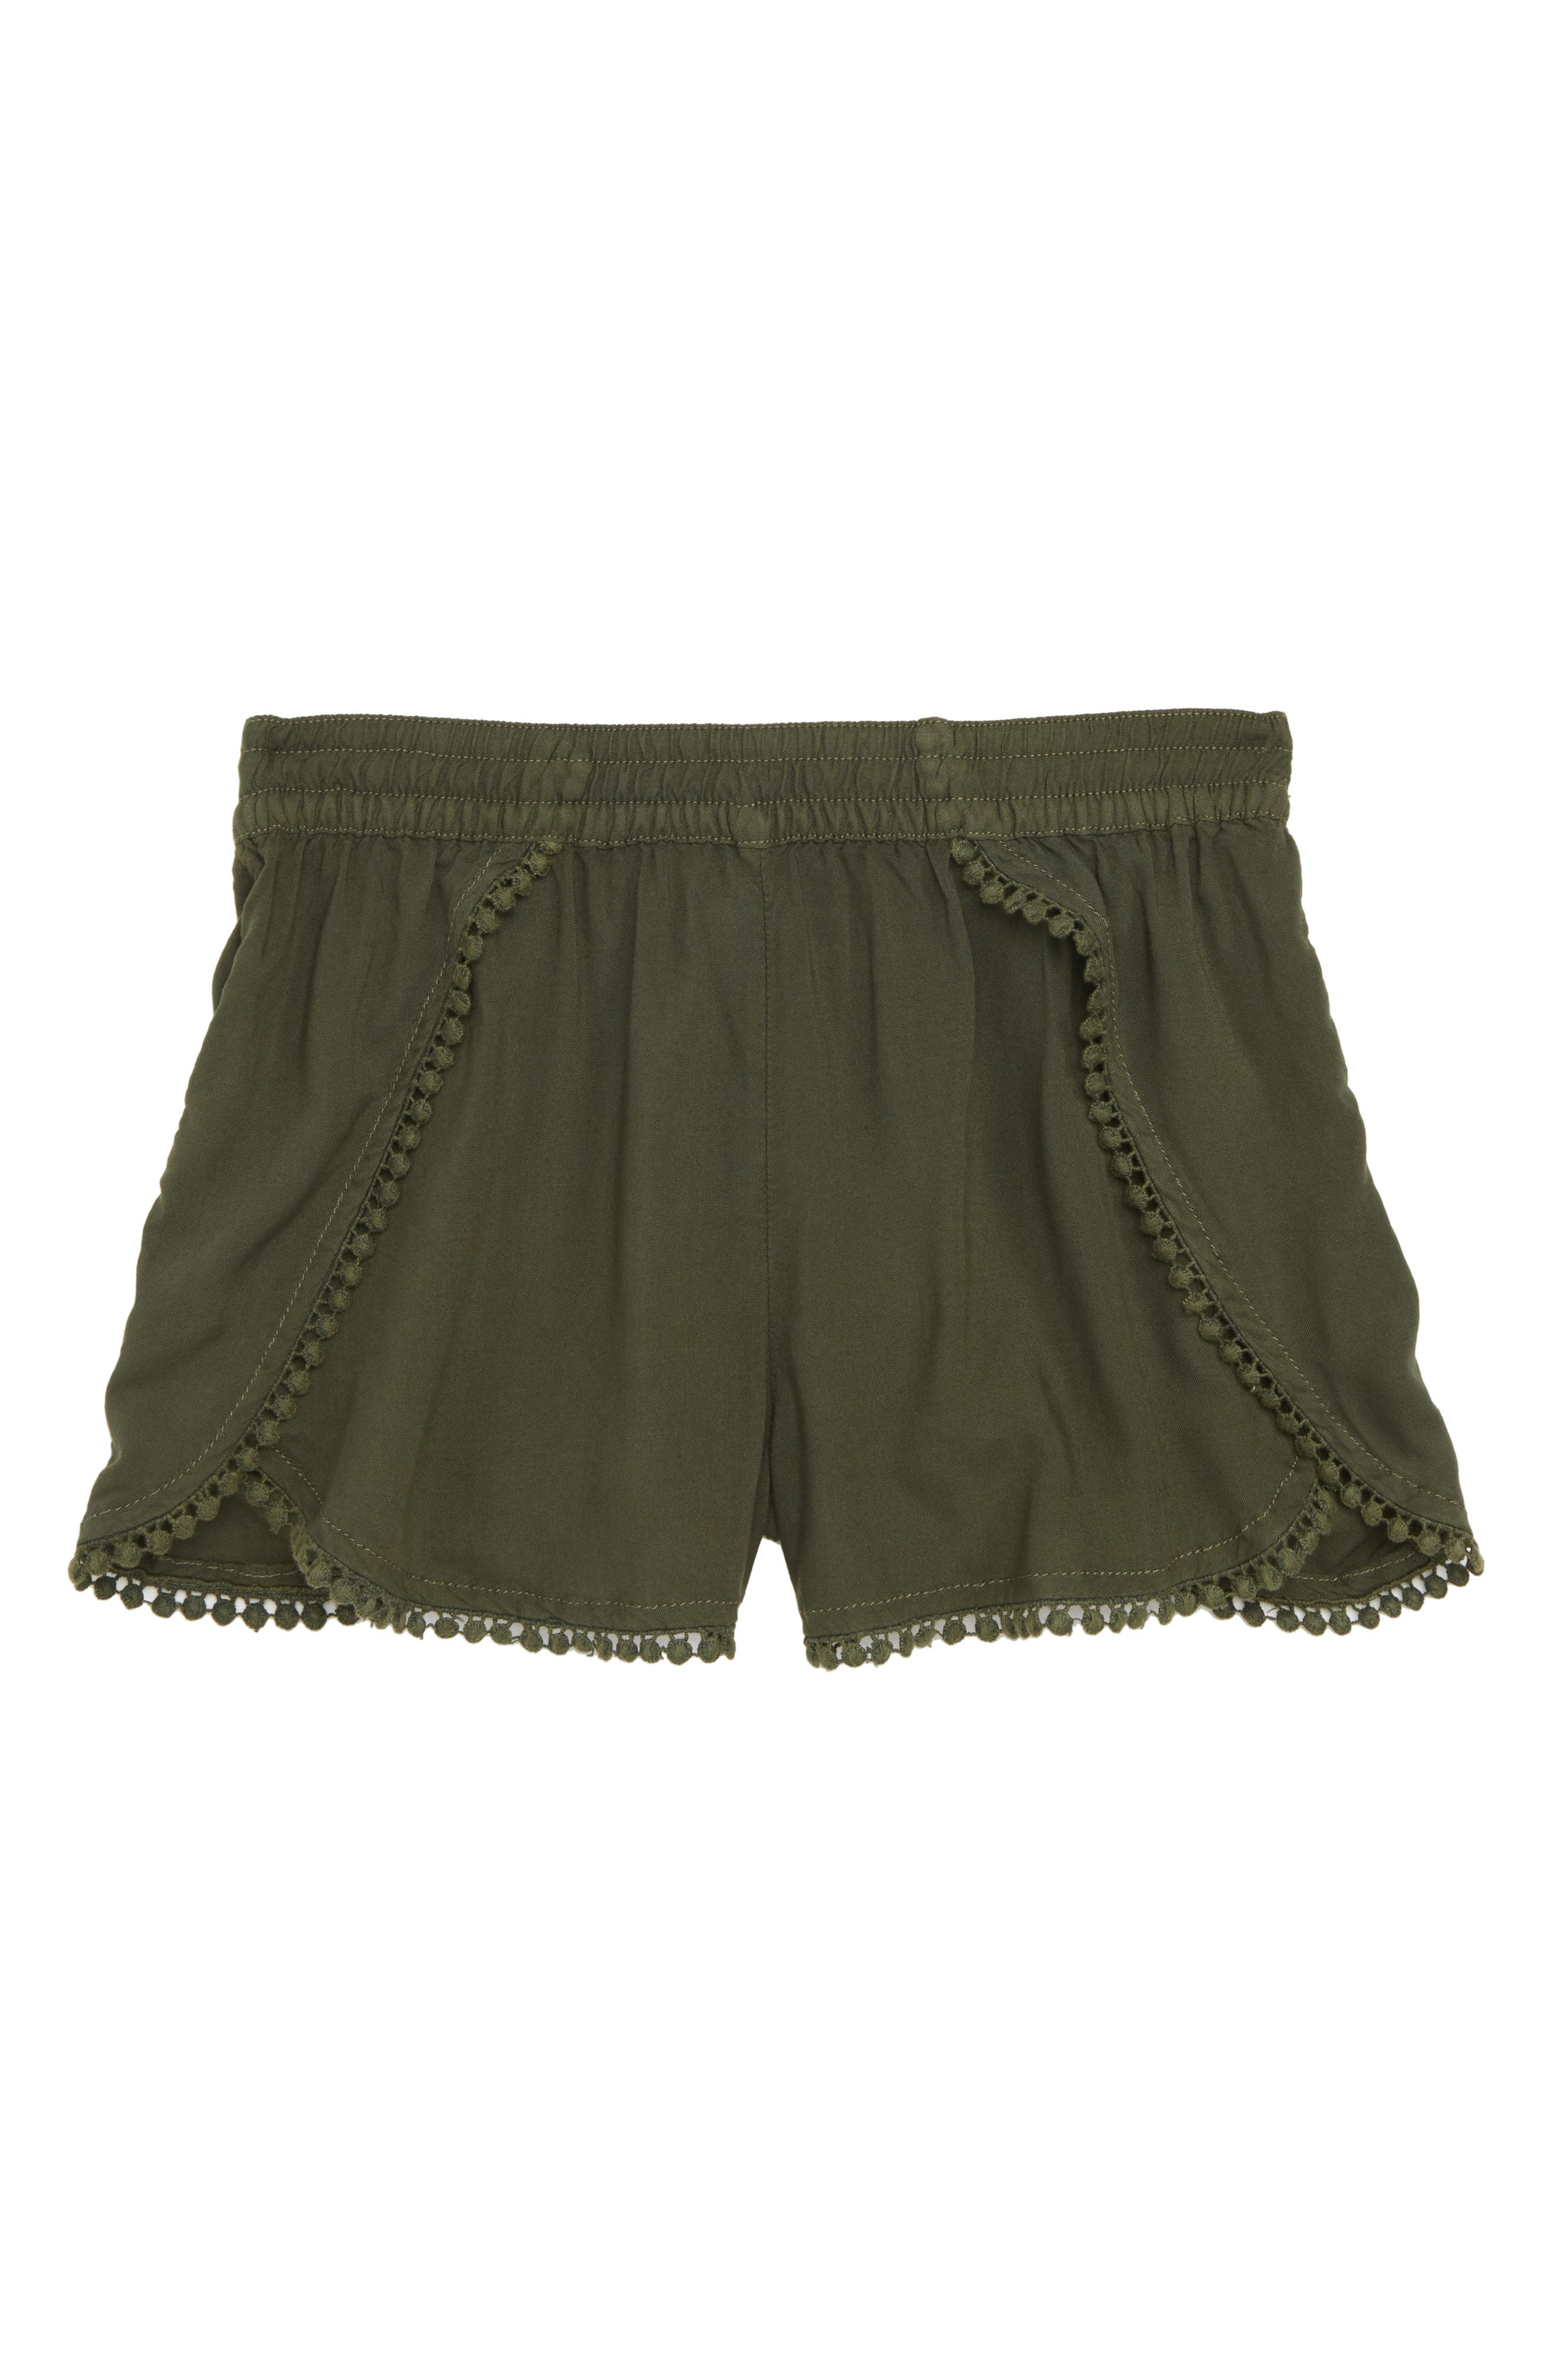 Petal Shorts,                         Main,                         color, 311